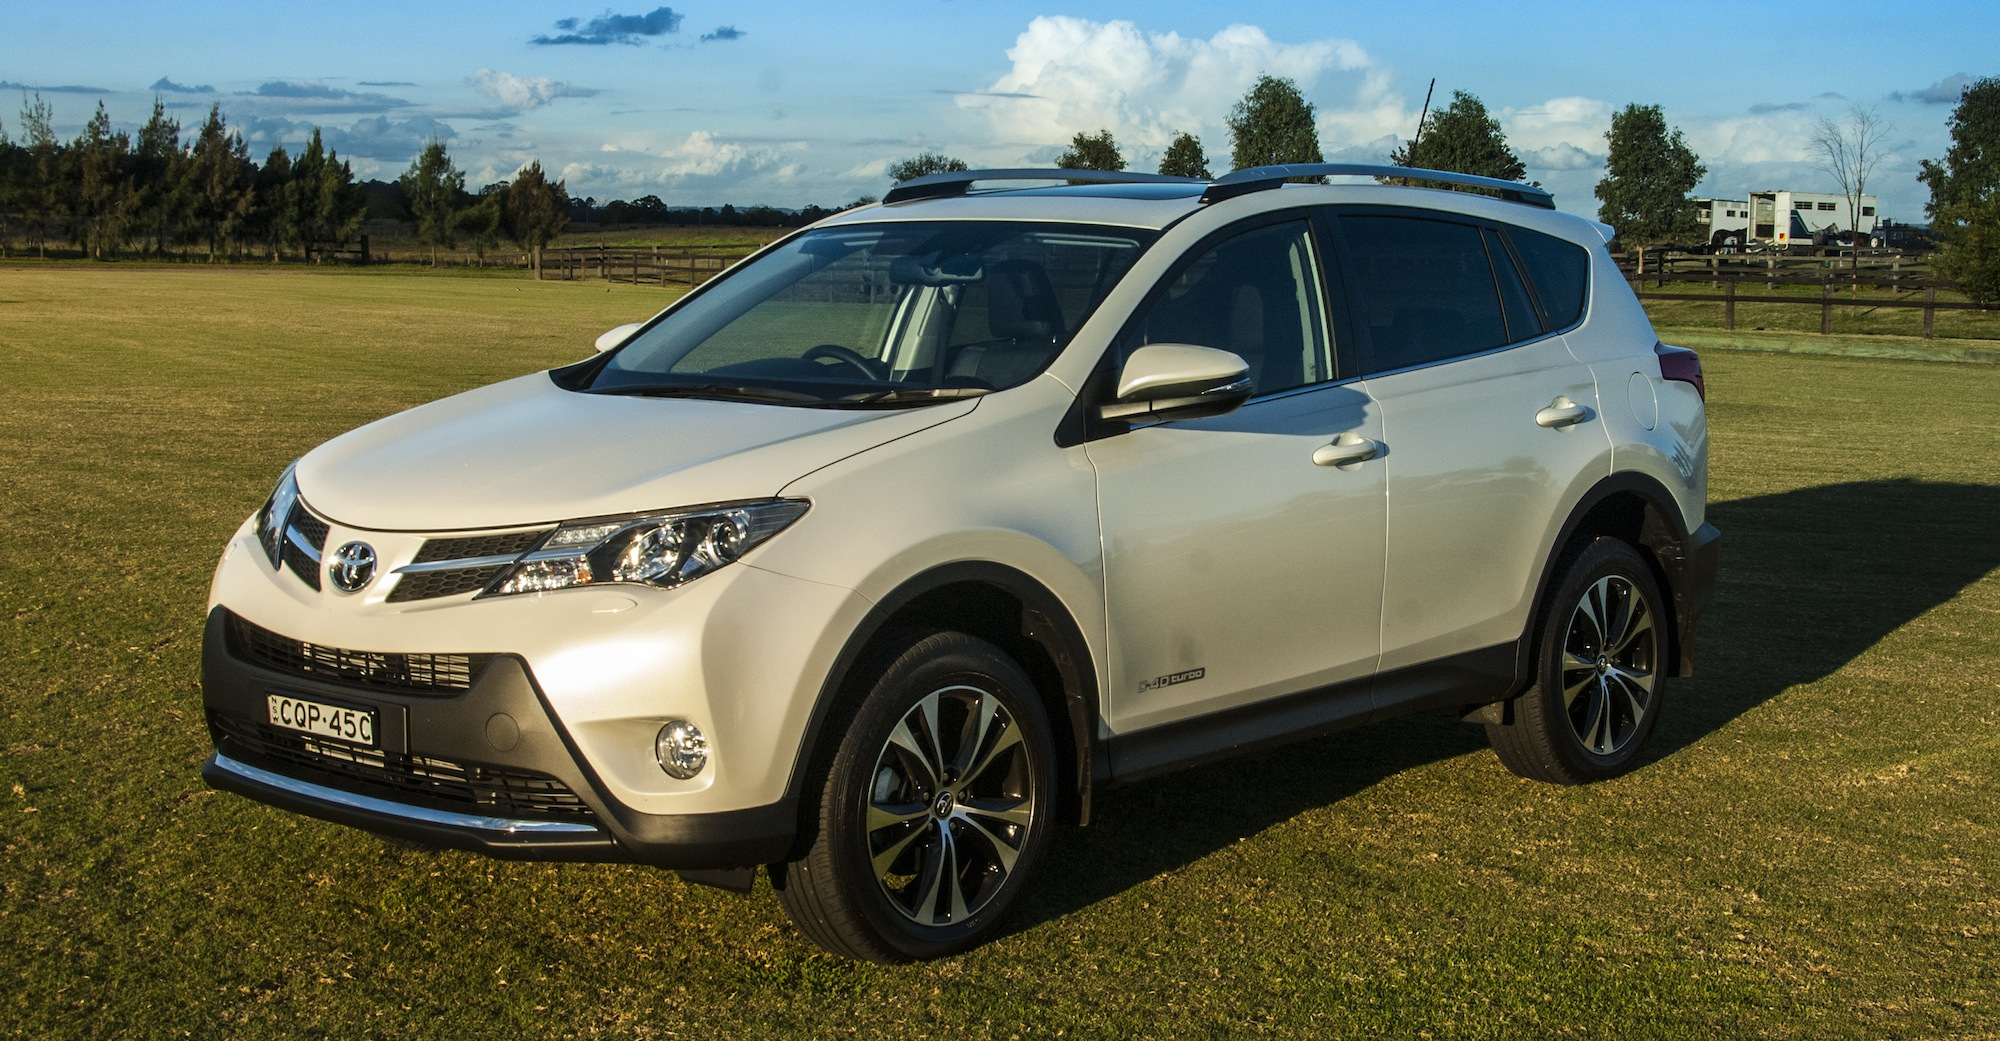 Awd Sports Cars >> 2014 Toyota RAV4 Review : Cruiser | CarAdvice